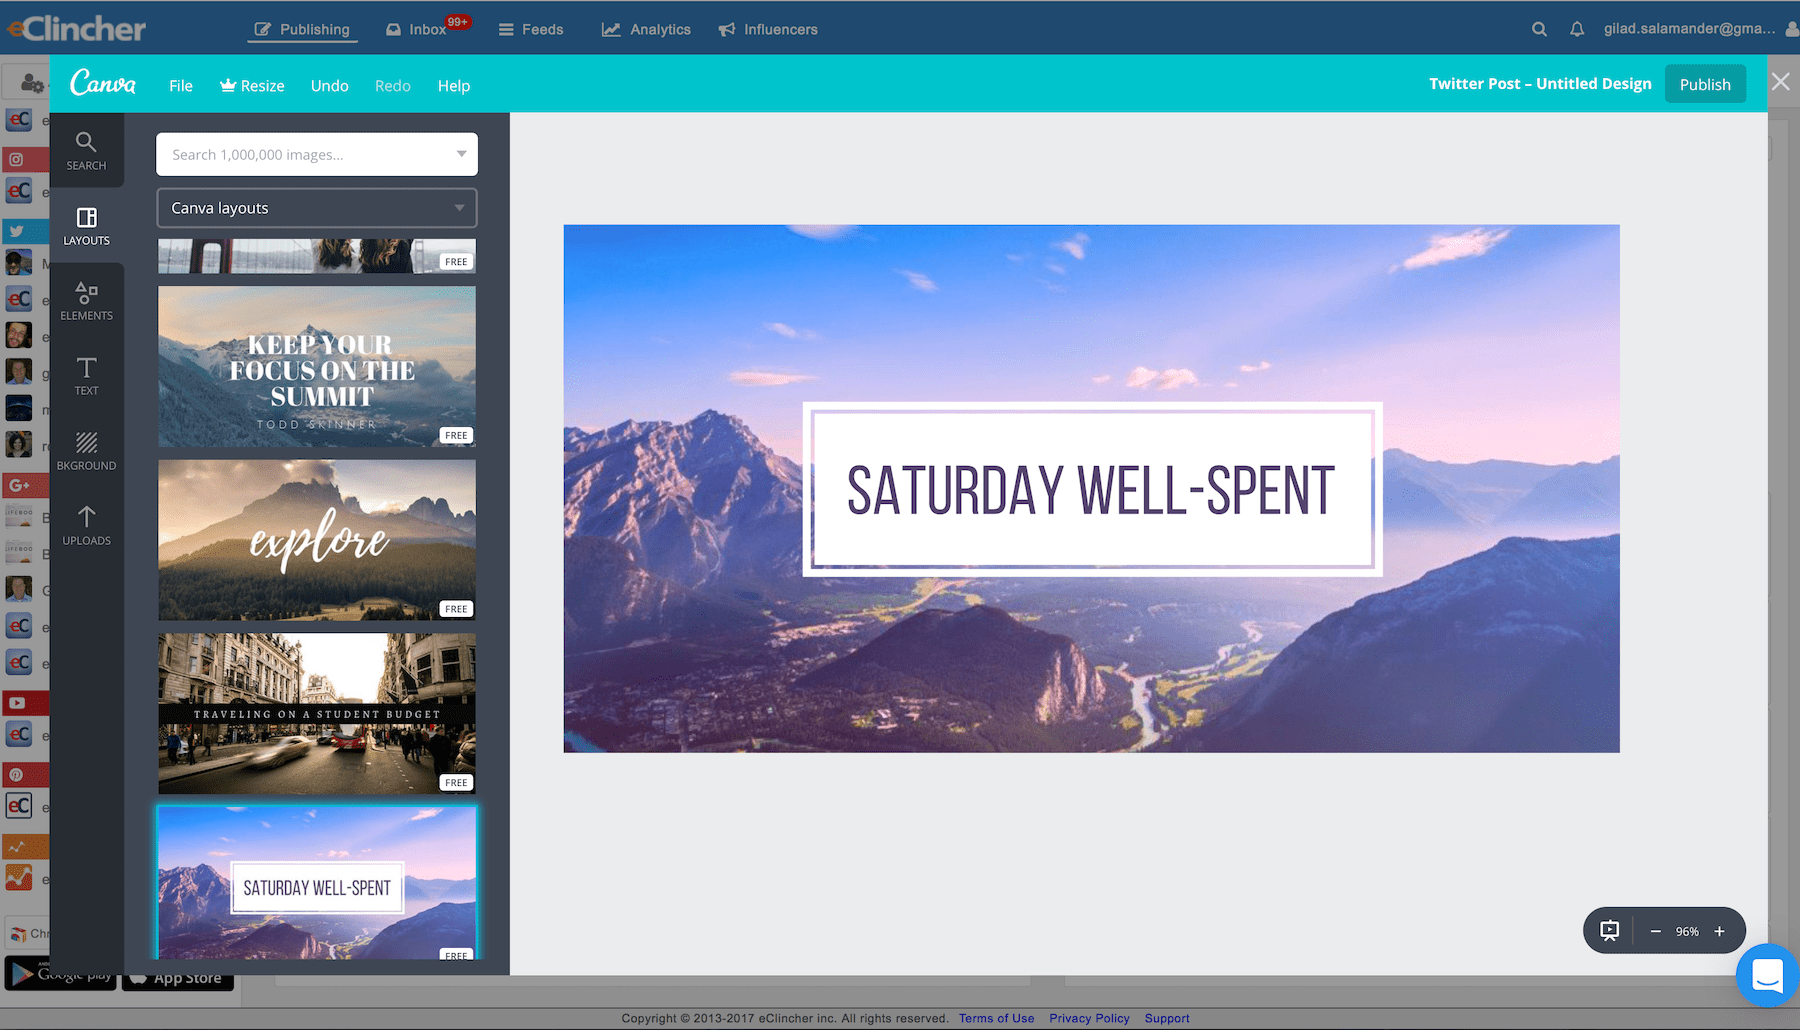 eClincher Software - eClincher integrates with Canva, allowing users to create custom images for their social posts